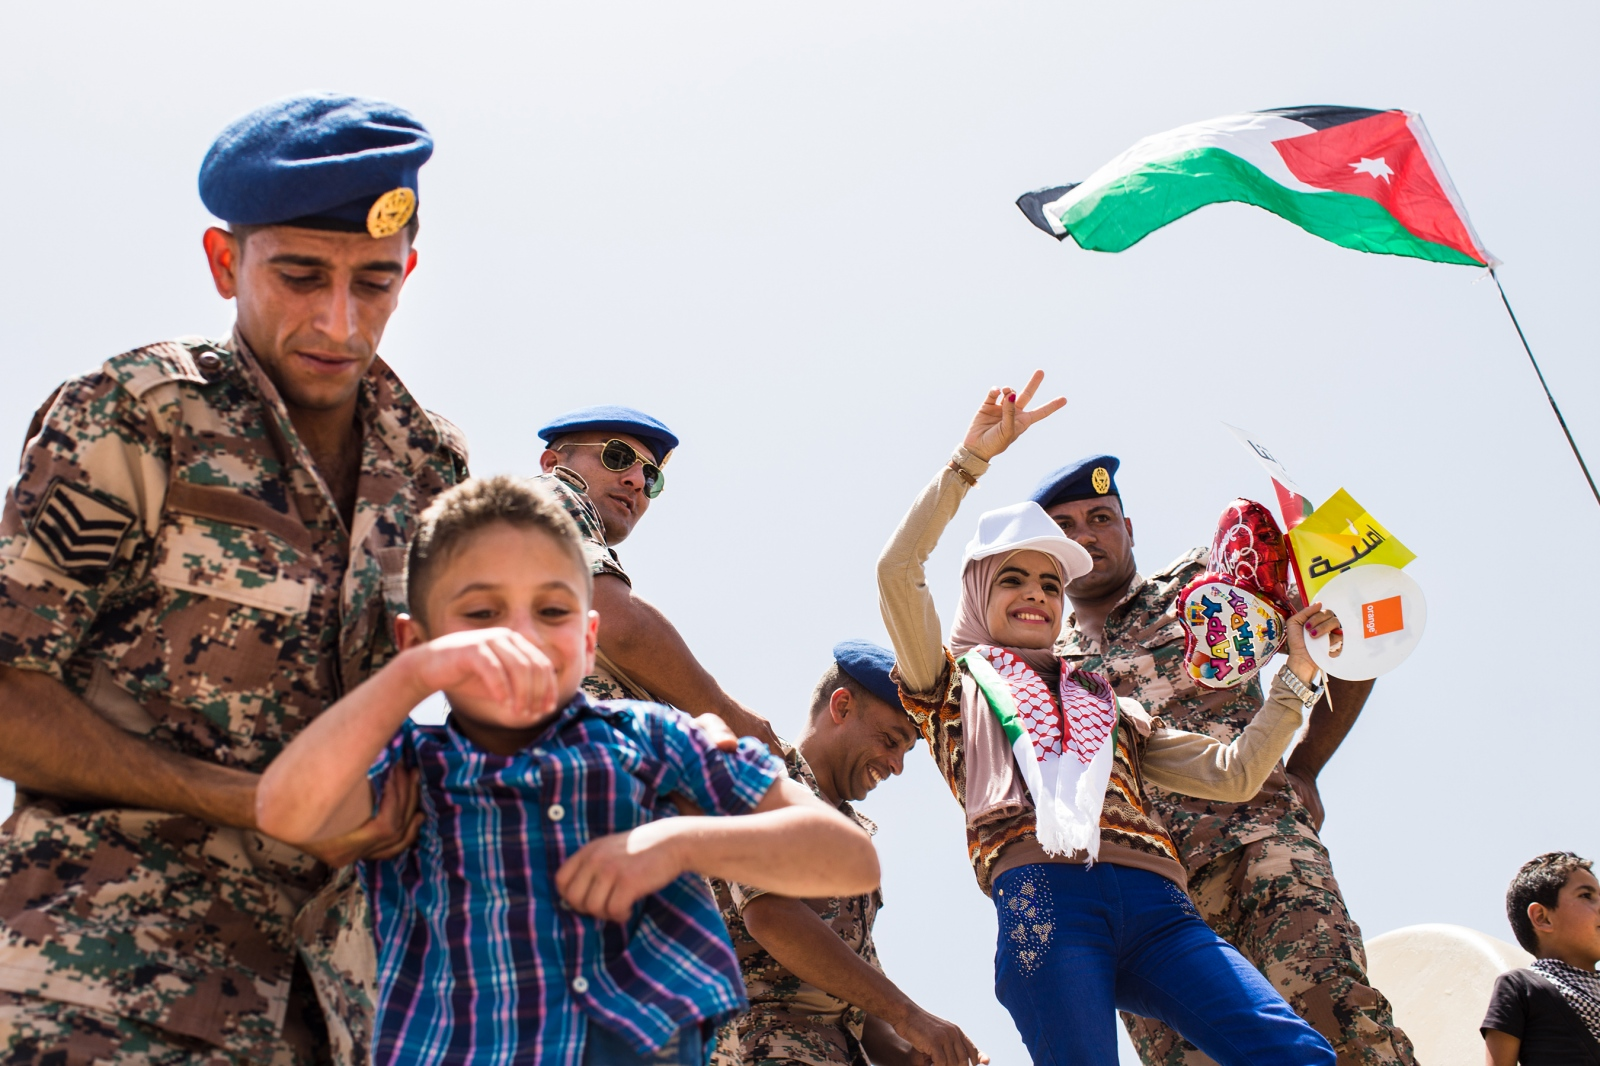 A Jordanian soldier helps a boy get on top of a tank for a photo, while another woman poses with soldiers. Large celebrations and festivals were held in Amman, Jordan to mark the centennial of the Great Arab Revolt on June 3, 2016.